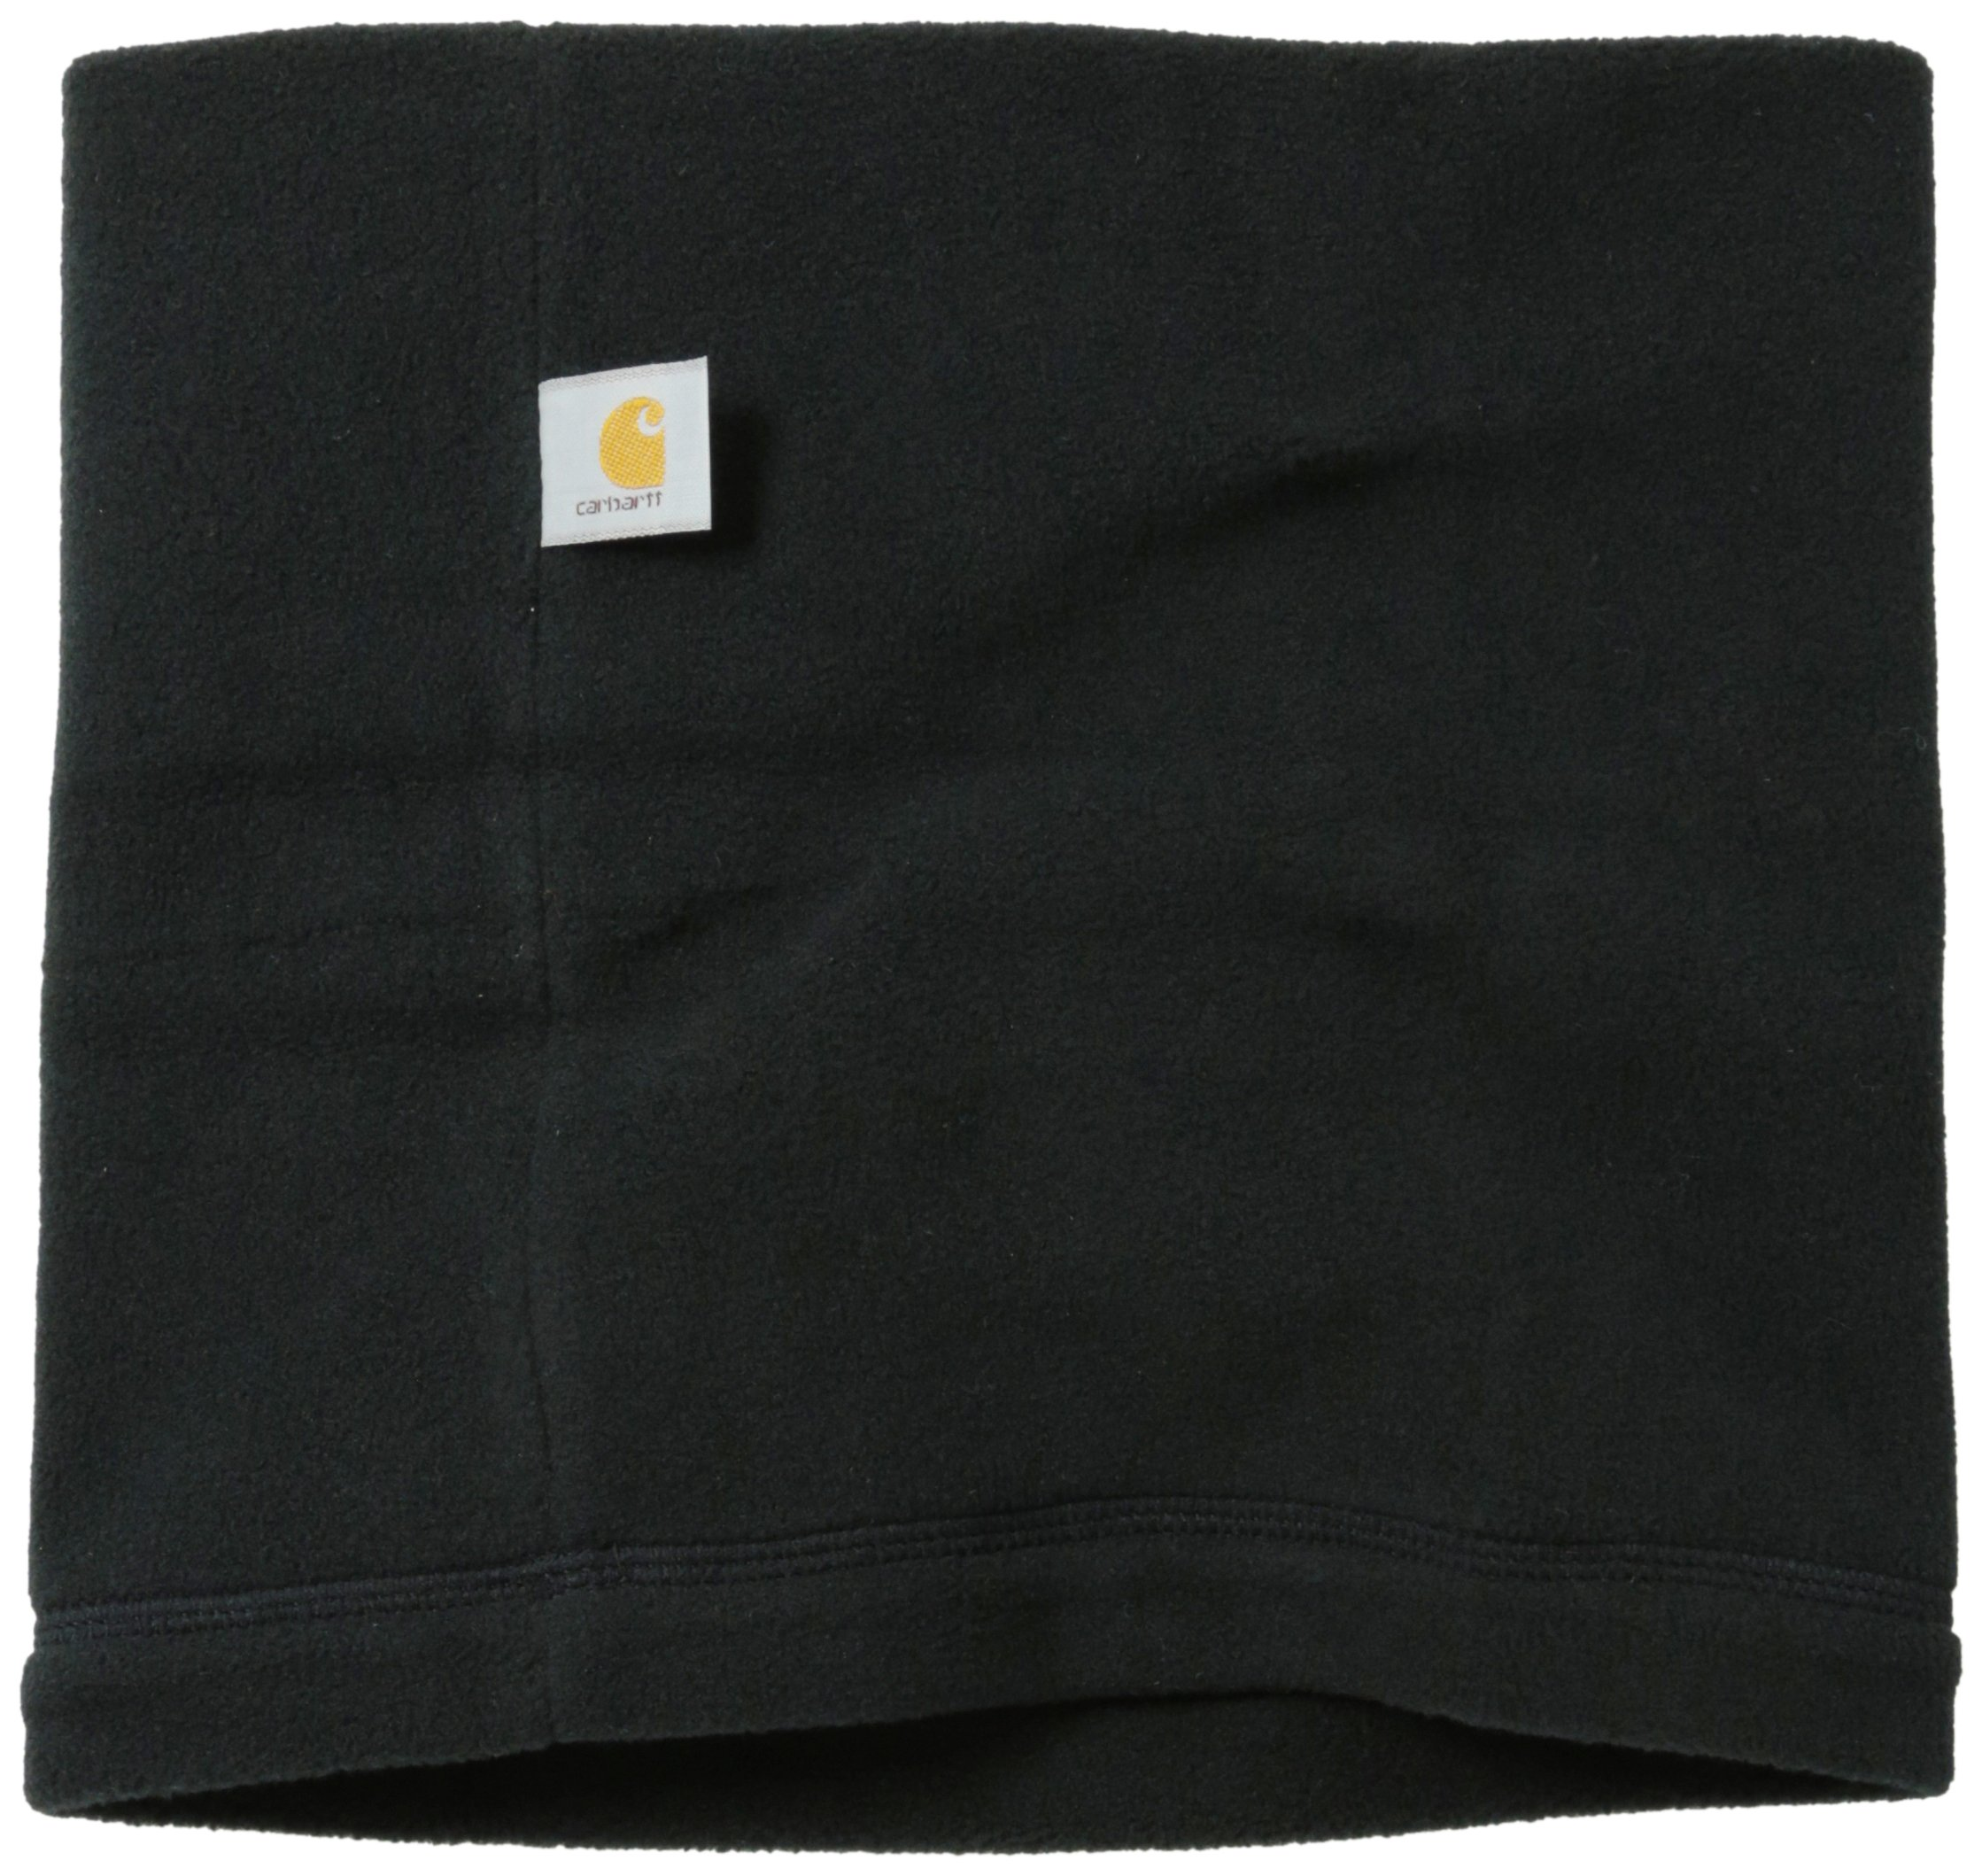 Carhartt Men's Fleece Neck Gaiter,Black,One Size